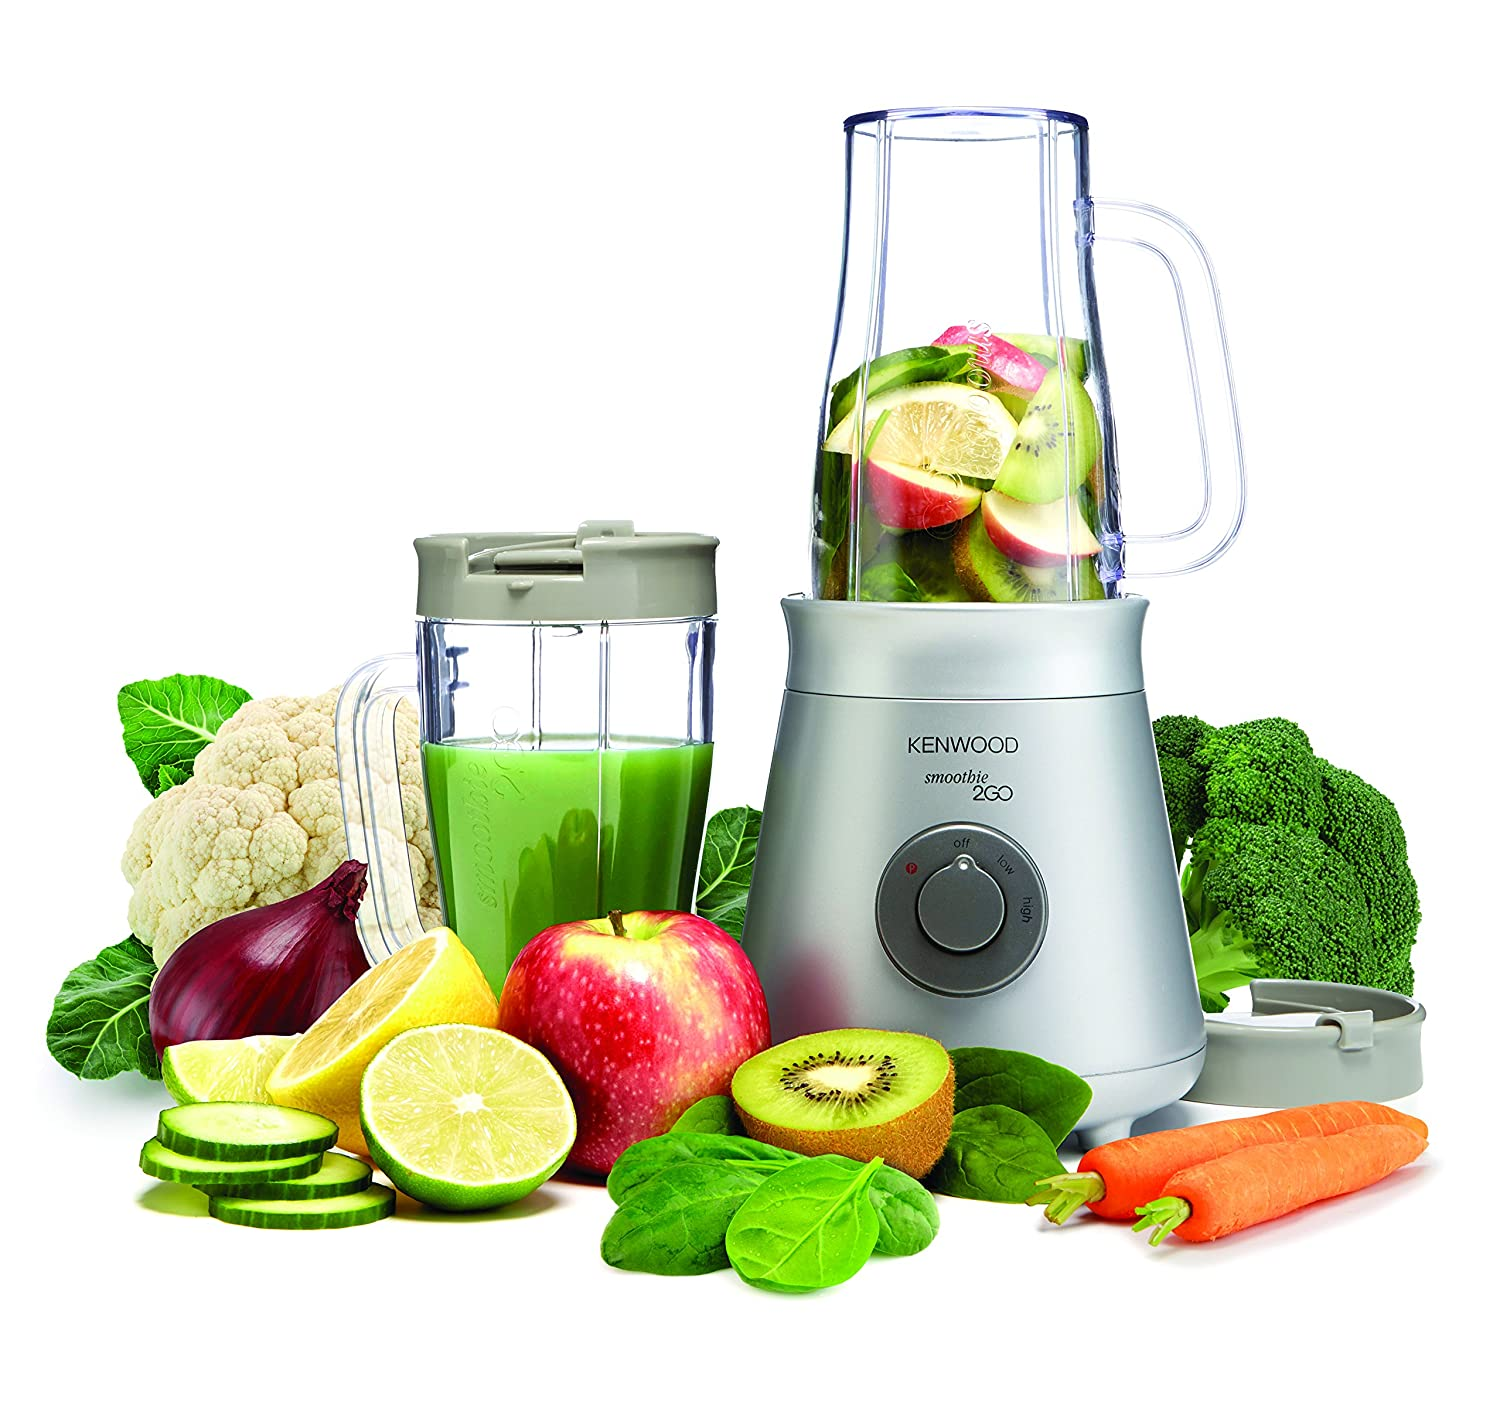 Priced at under £25, this Kenwood smoothie maker is a popular option and is one of the top products within this price range.